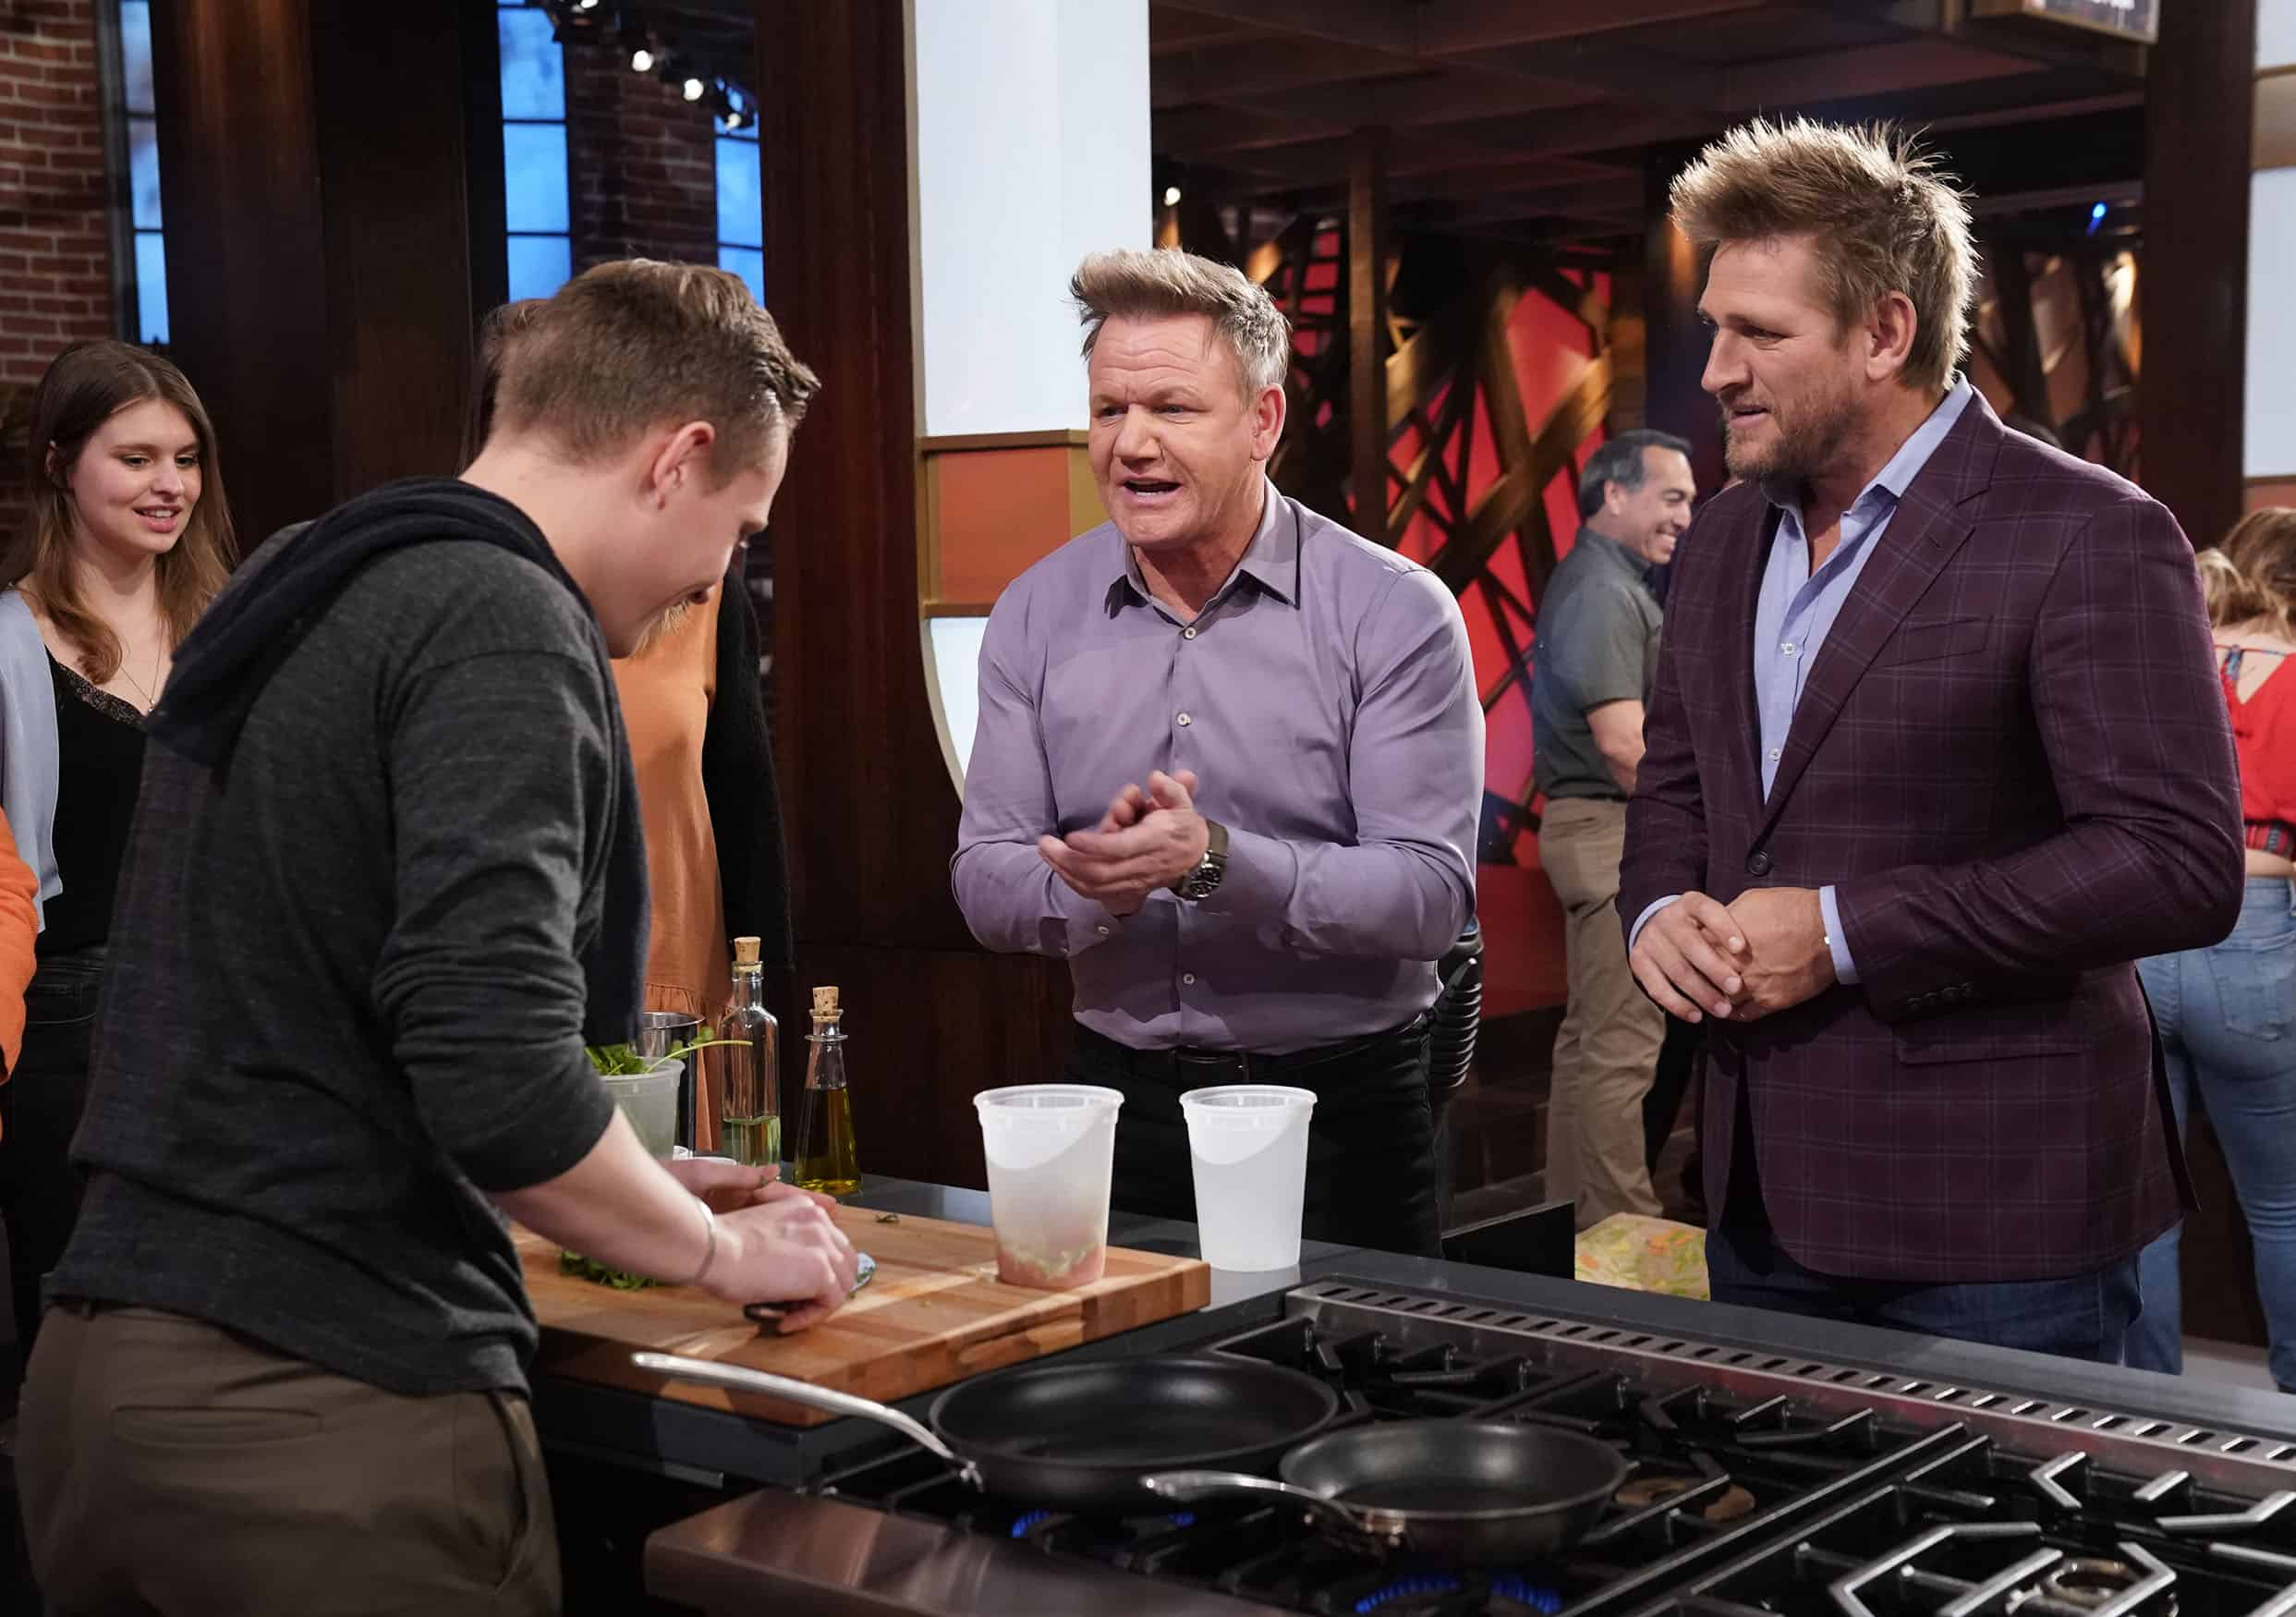 """MASTERCHEF Season 11 Episode 2 : L-R: A contestant with chef/judge Gordon Ramsay and guest judge Curtis Stone in the """"Legends: Curtis Stone - Auditions Round 2"""" episode of MASTERCHEF airing Wednesday, June 9 (8:00-9:00 PM ET/PT) on FOX. © 2019 FOX MEDIA LLC. CR: FOX."""